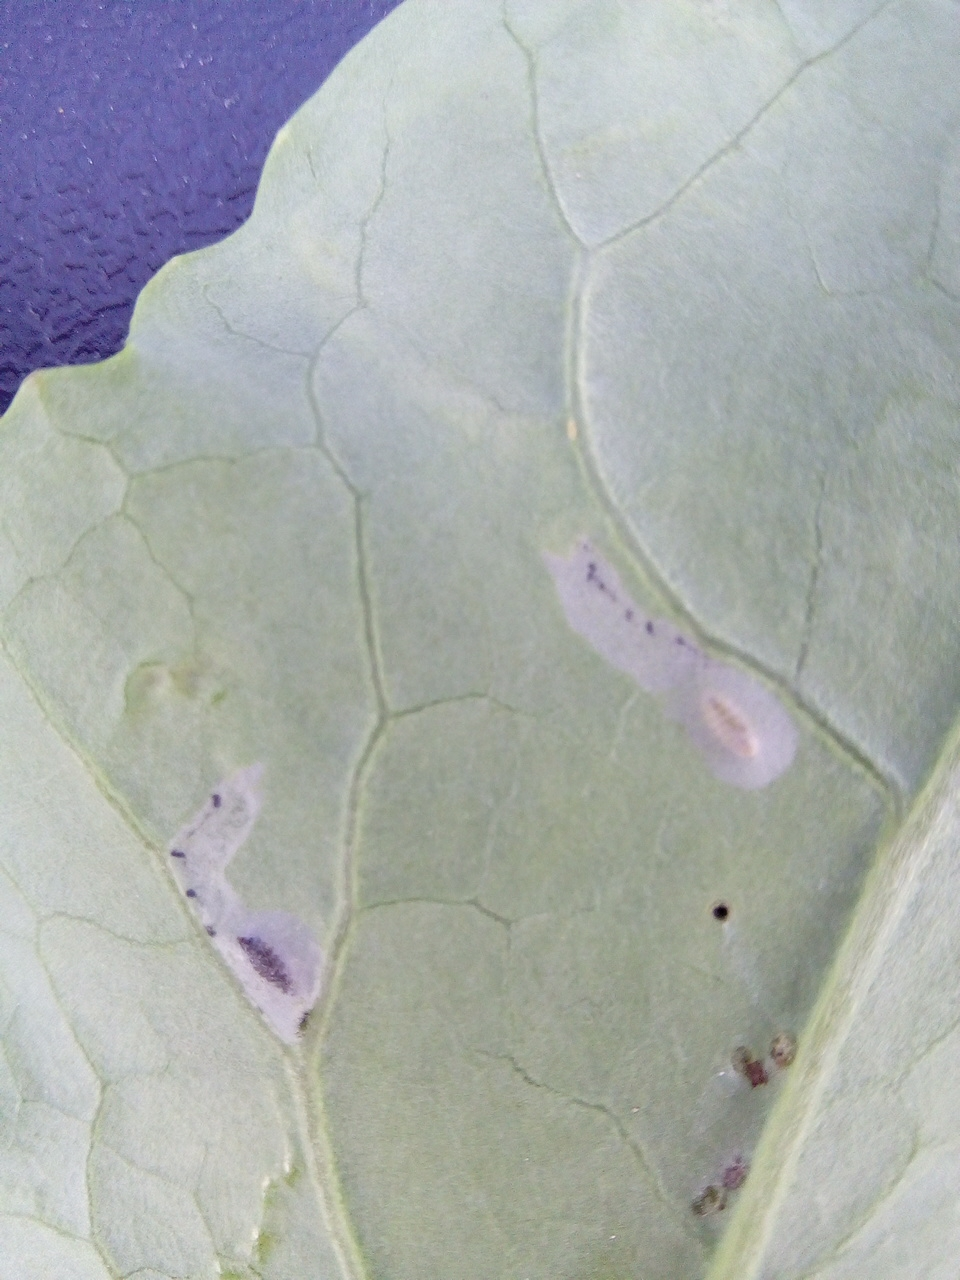 Found on one cauliflower leaf. Something eating the center of the leaf burying between the leaf skin